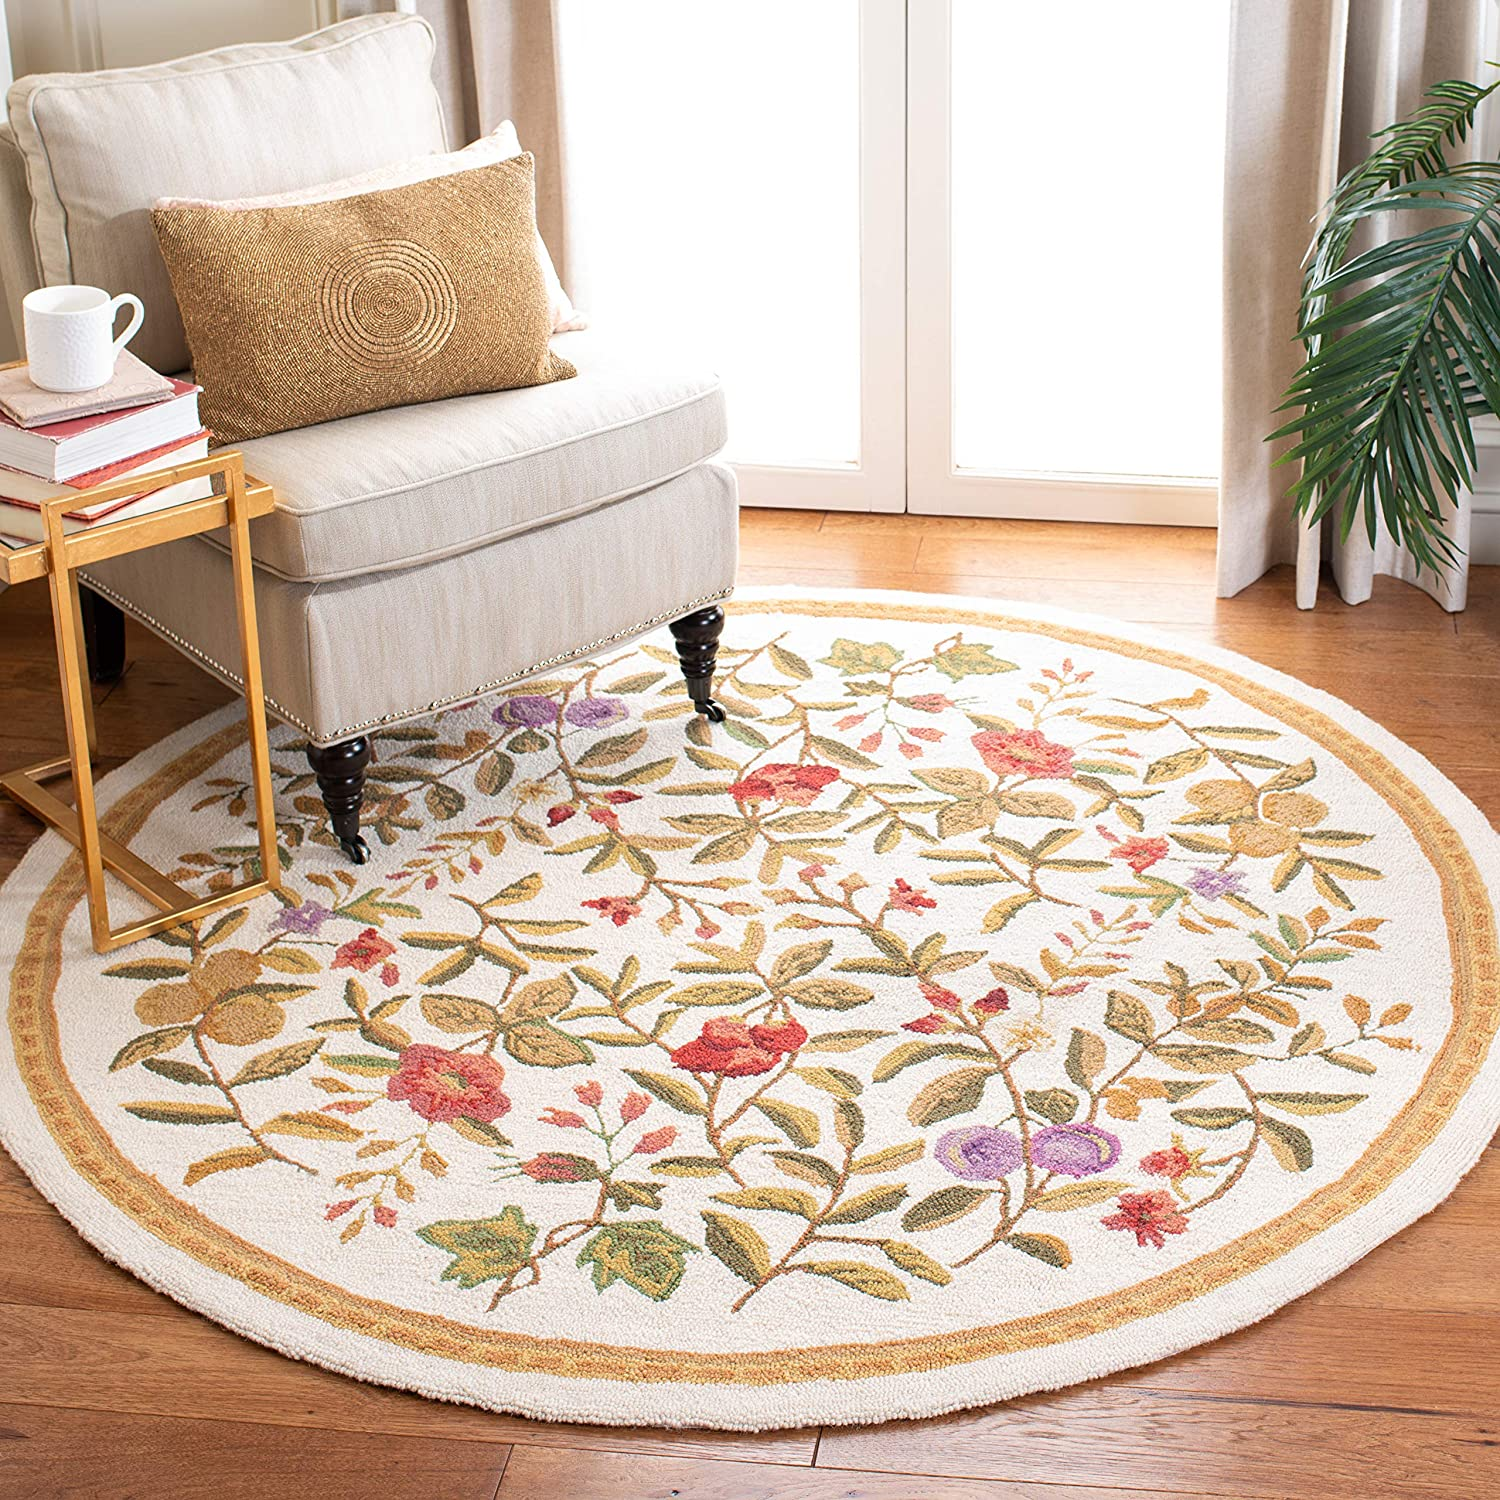 Safavieh Chelsea Collection HK210A Hand-Hooked Ivory Premium Wool Round Area Rug (3' Diameter)